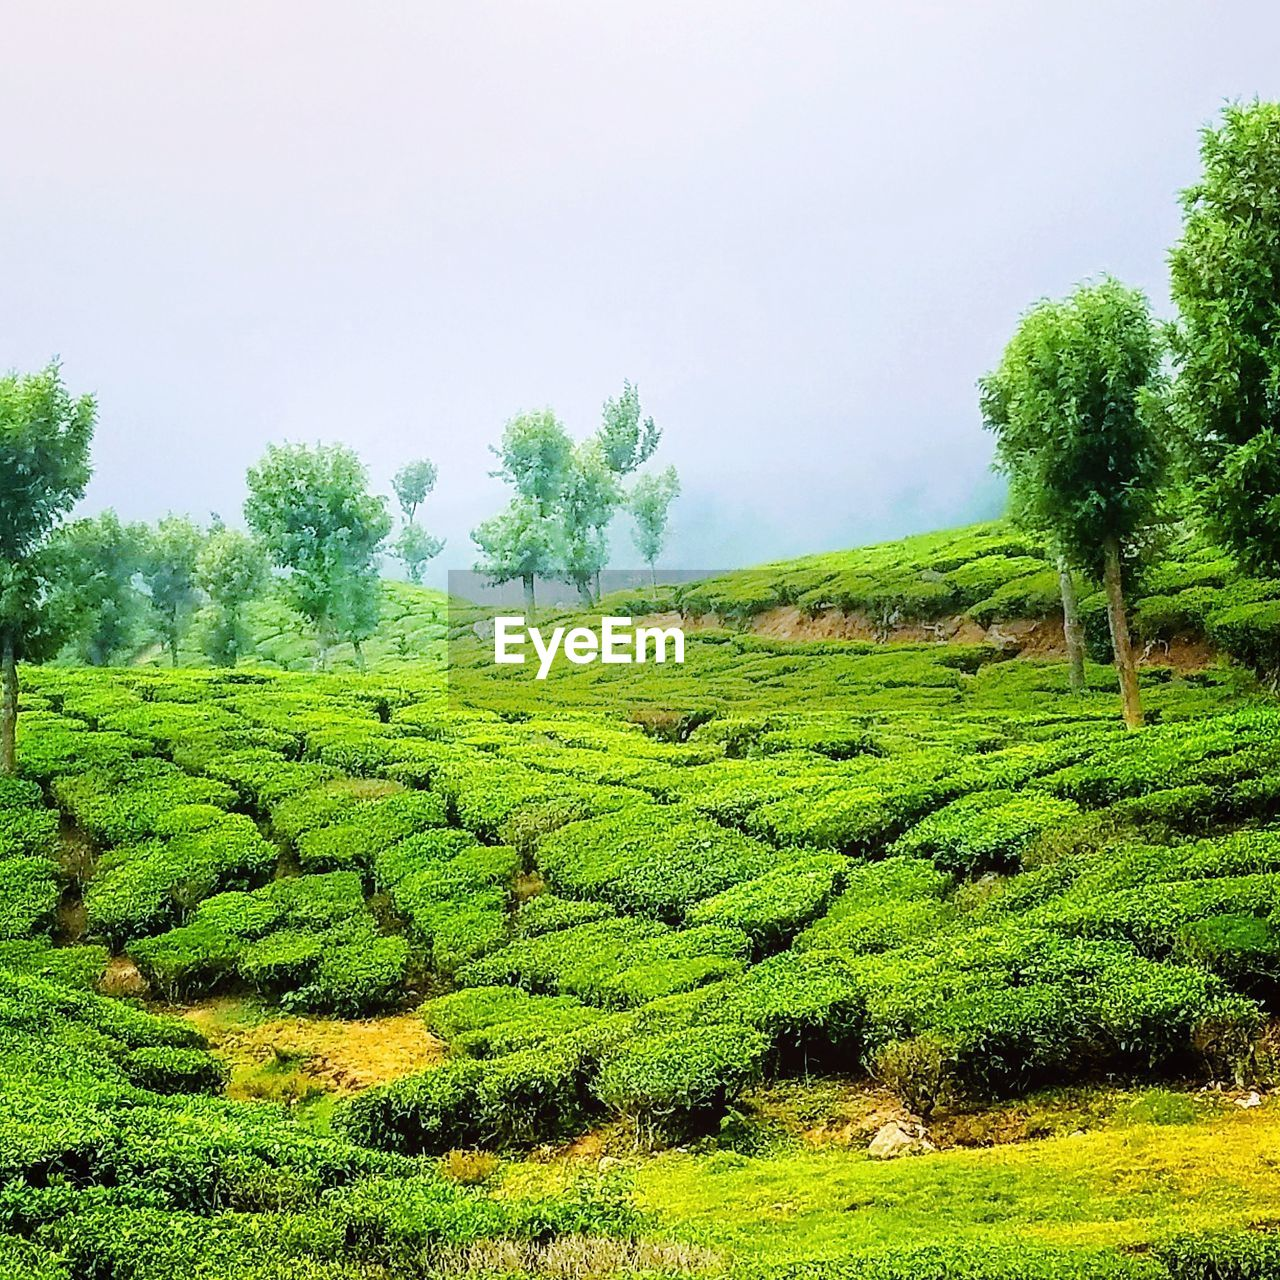 plant, green color, tree, growth, tranquility, beauty in nature, tranquil scene, landscape, scenics - nature, field, land, sky, environment, nature, no people, day, agriculture, crop, tea crop, rural scene, outdoors, plantation